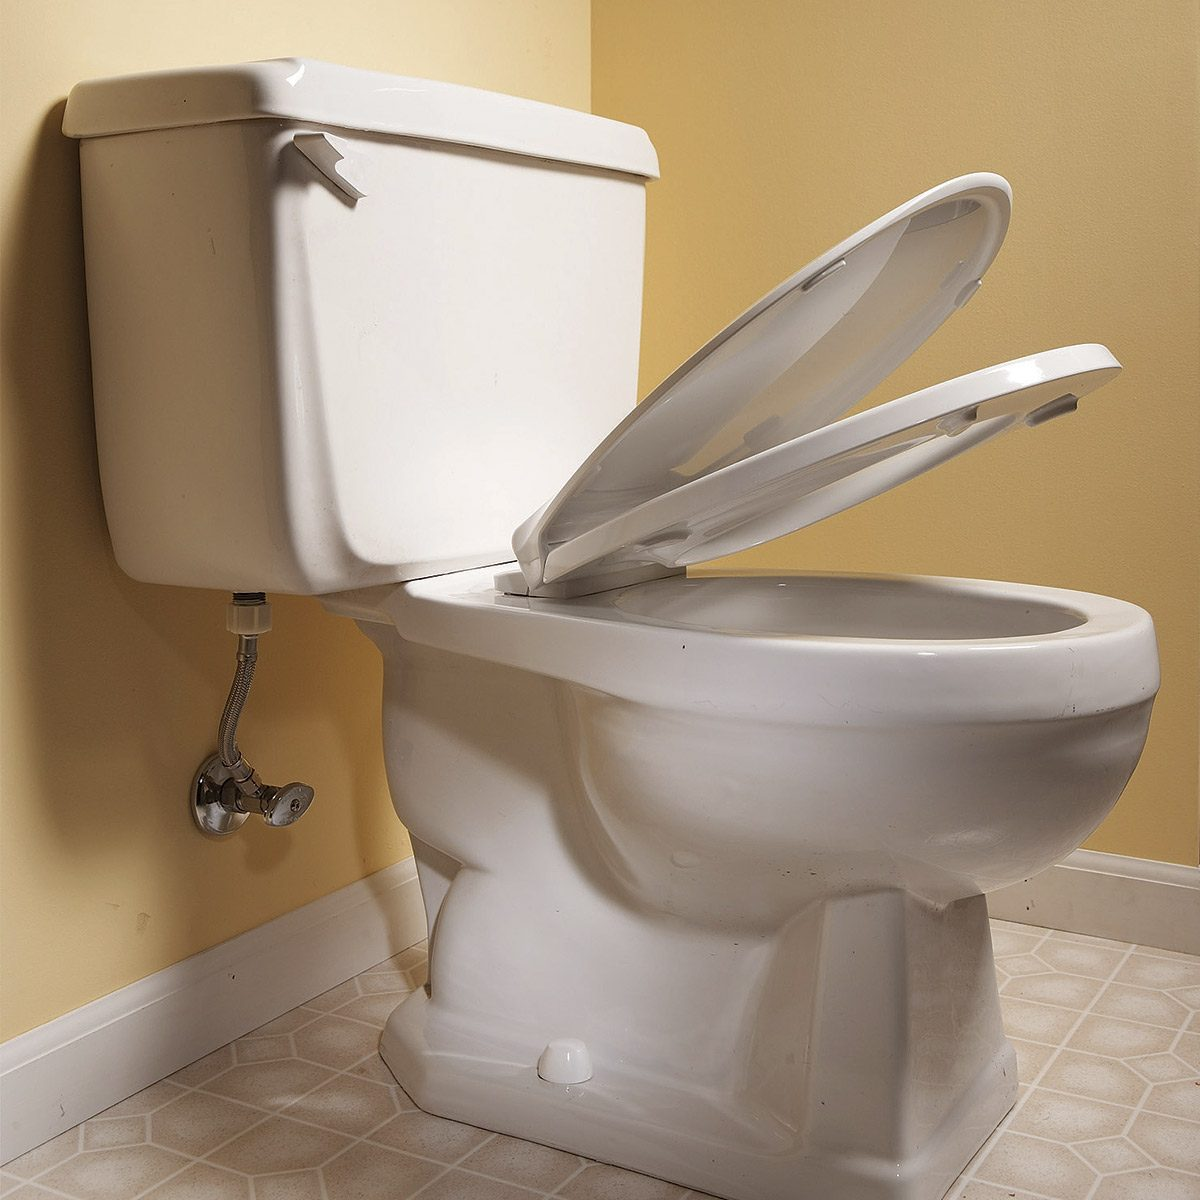 self-closing-toilet lid